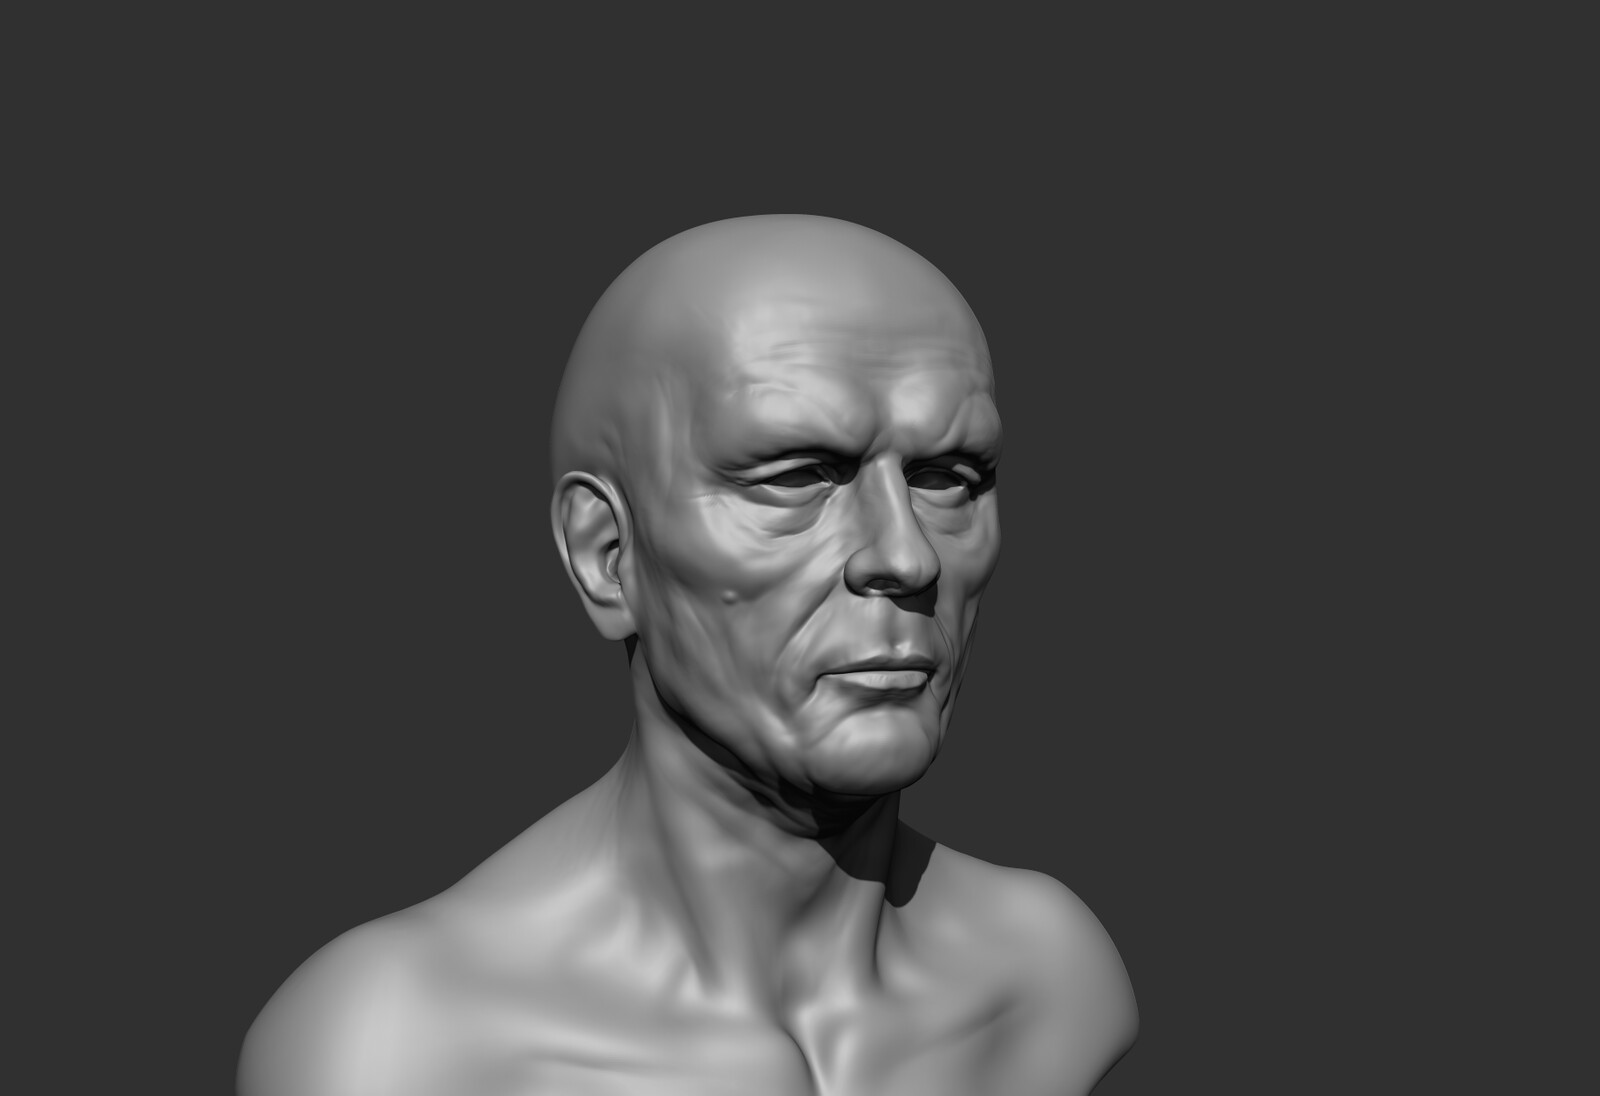 trying to  find the  bone marks  I  use  the  transparency on z brush using the see trough tool and  I put  the asian skull  to see find  the bone marks